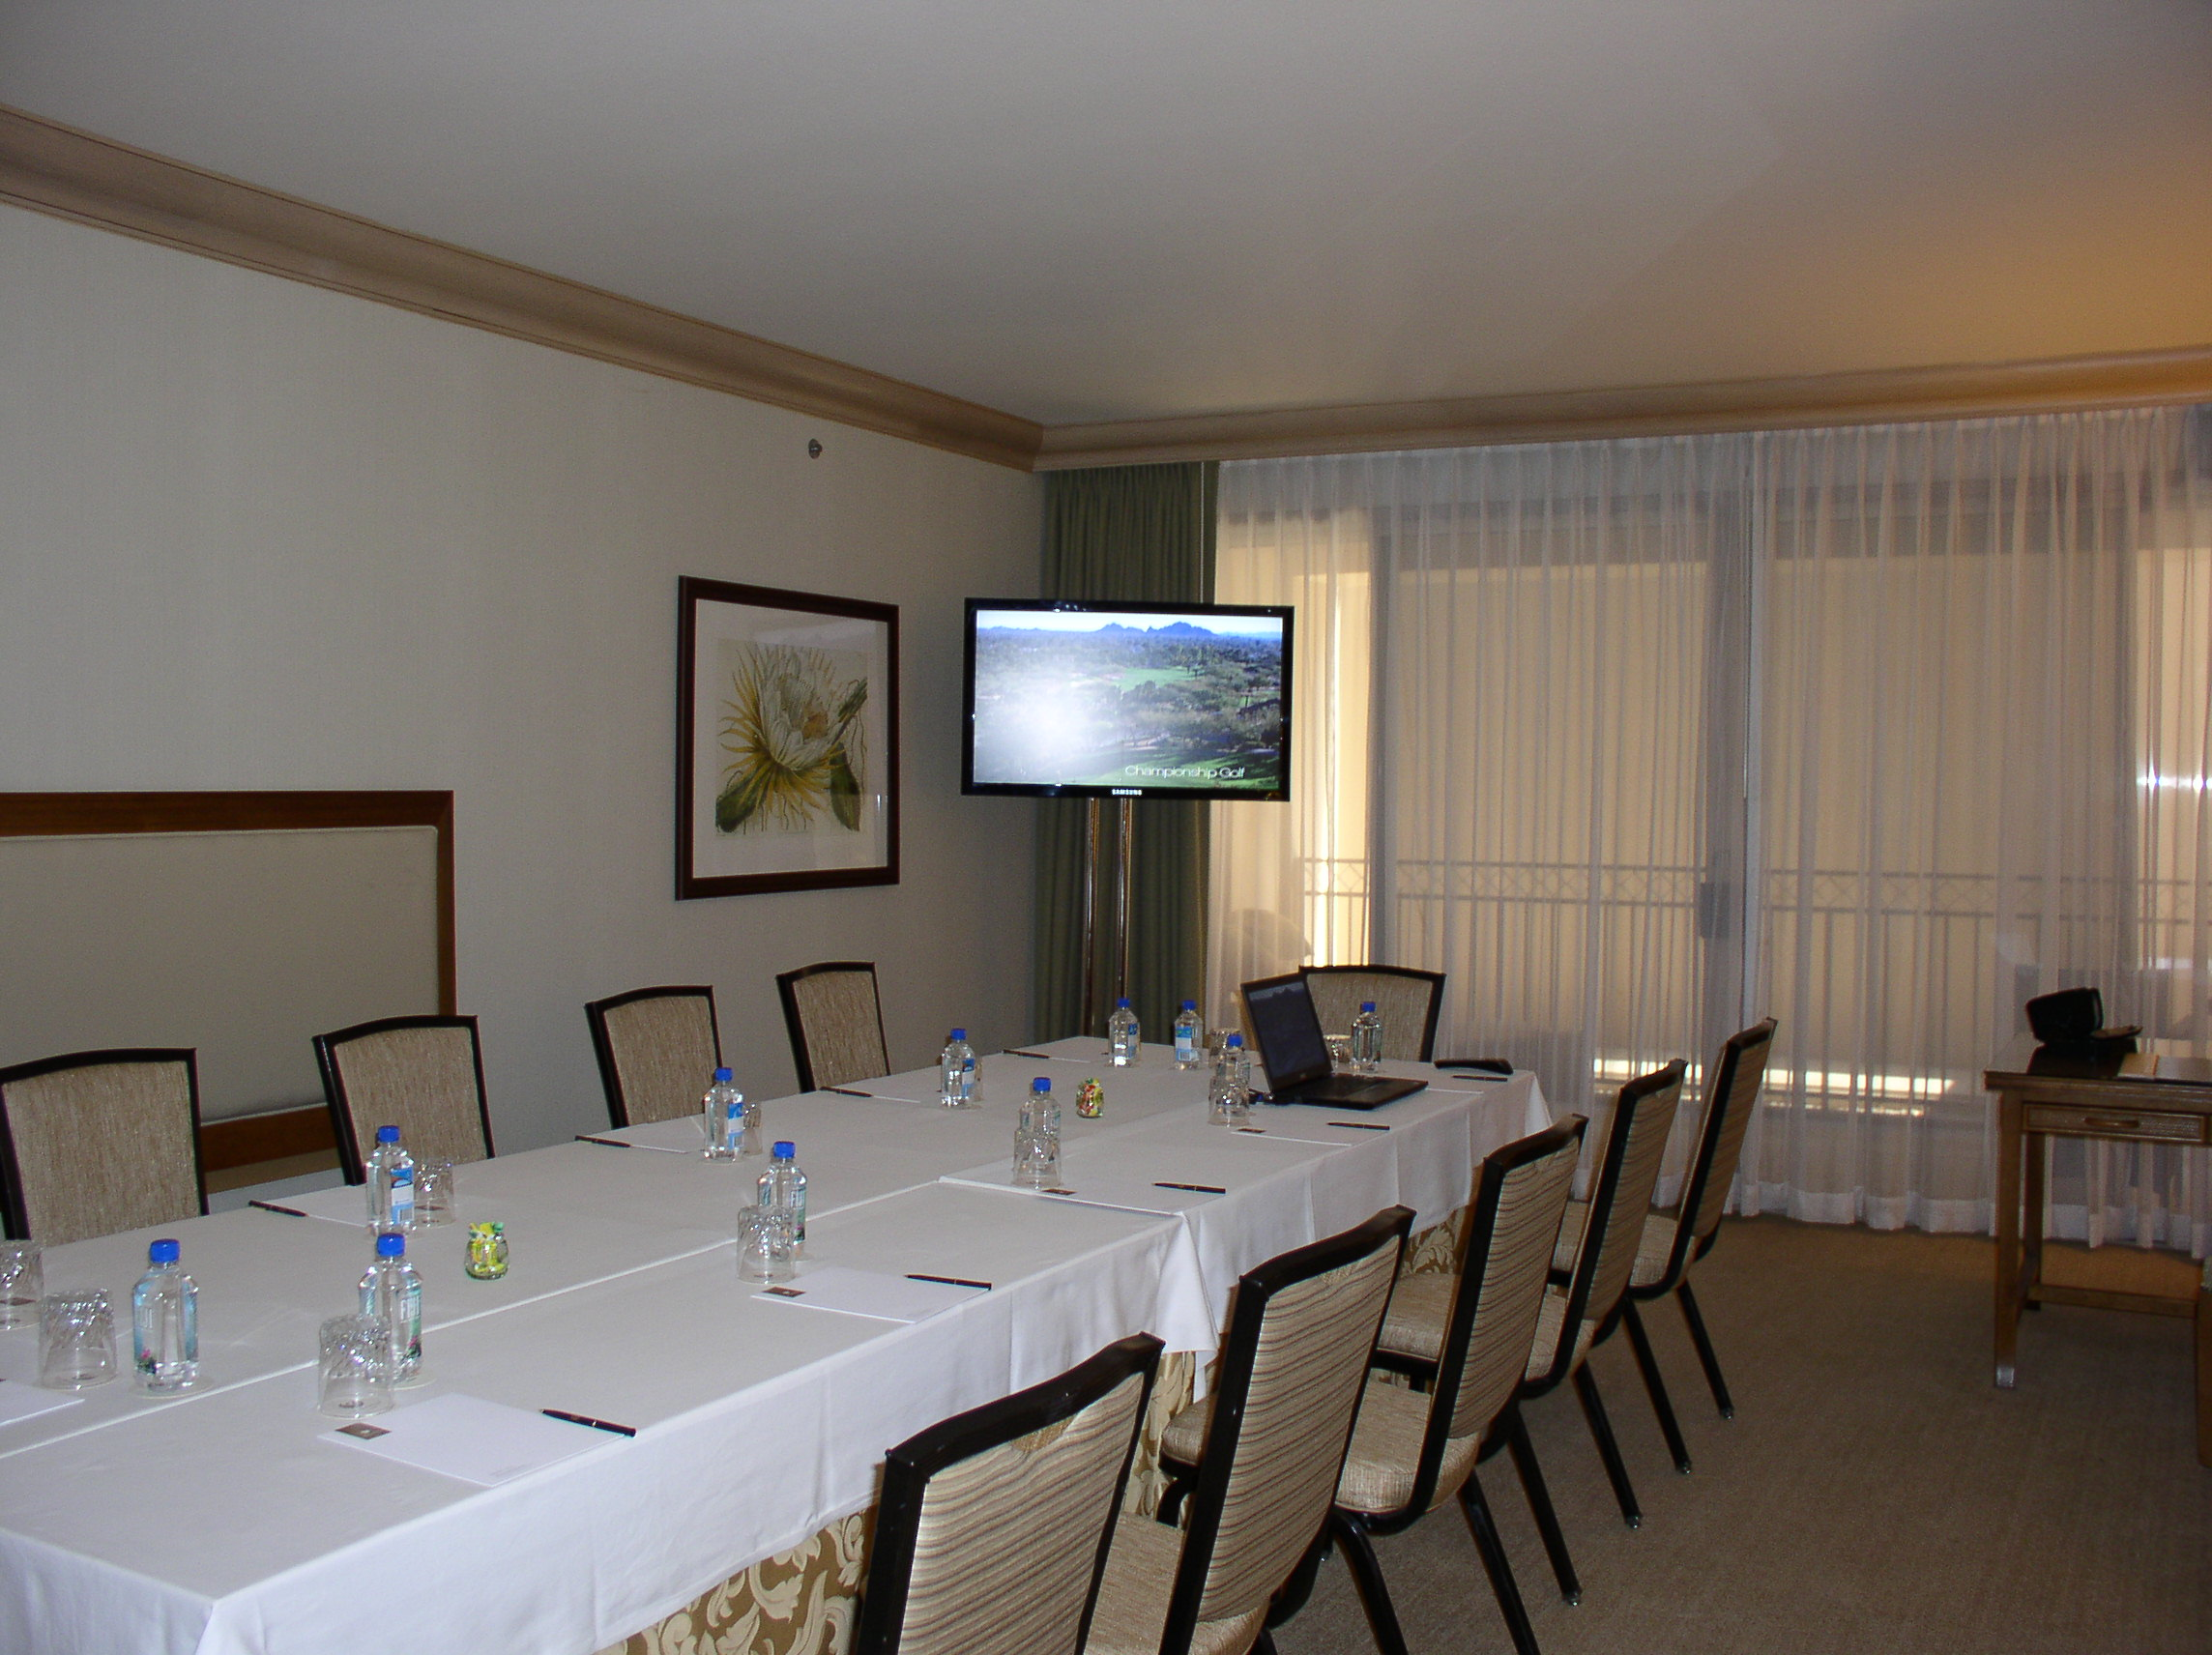 SEE2013 Meeting Room